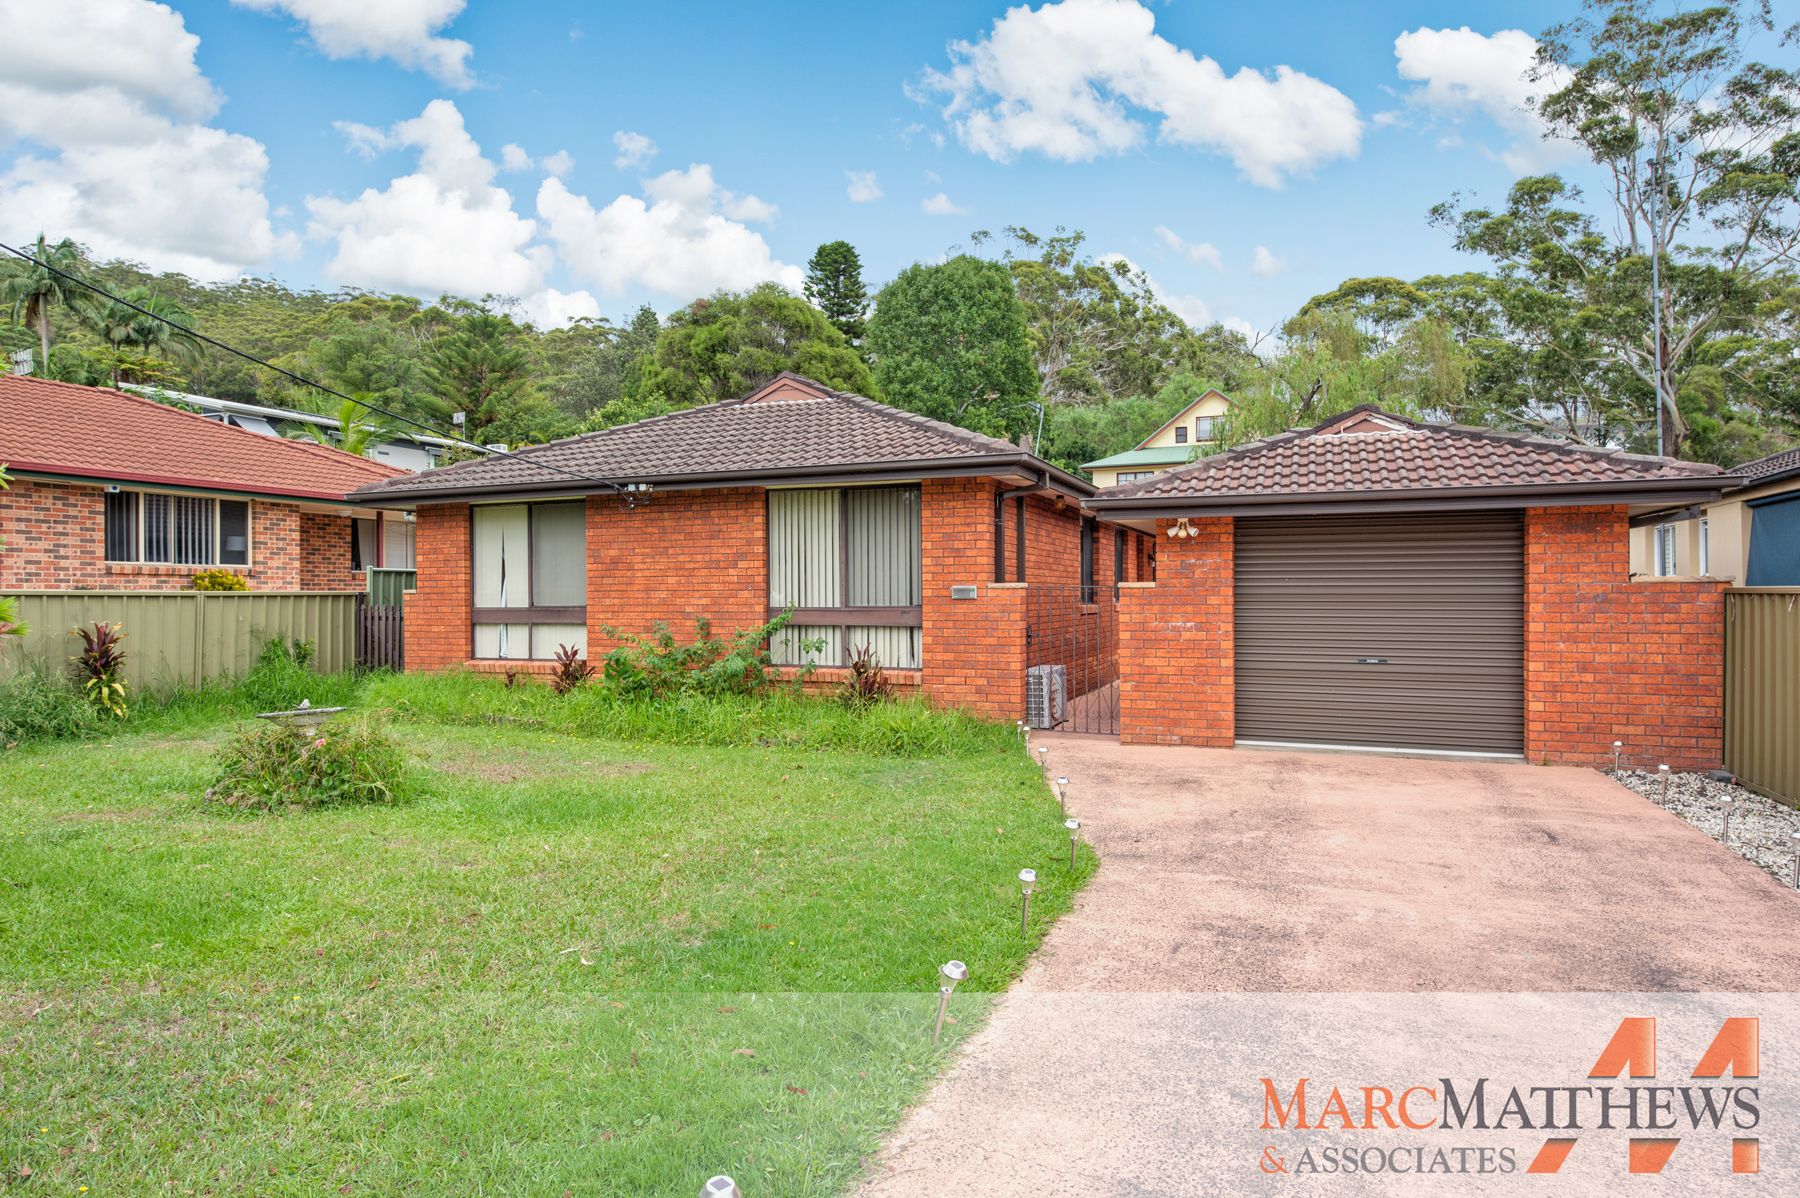 41 Greenfield Rd, Empire Bay